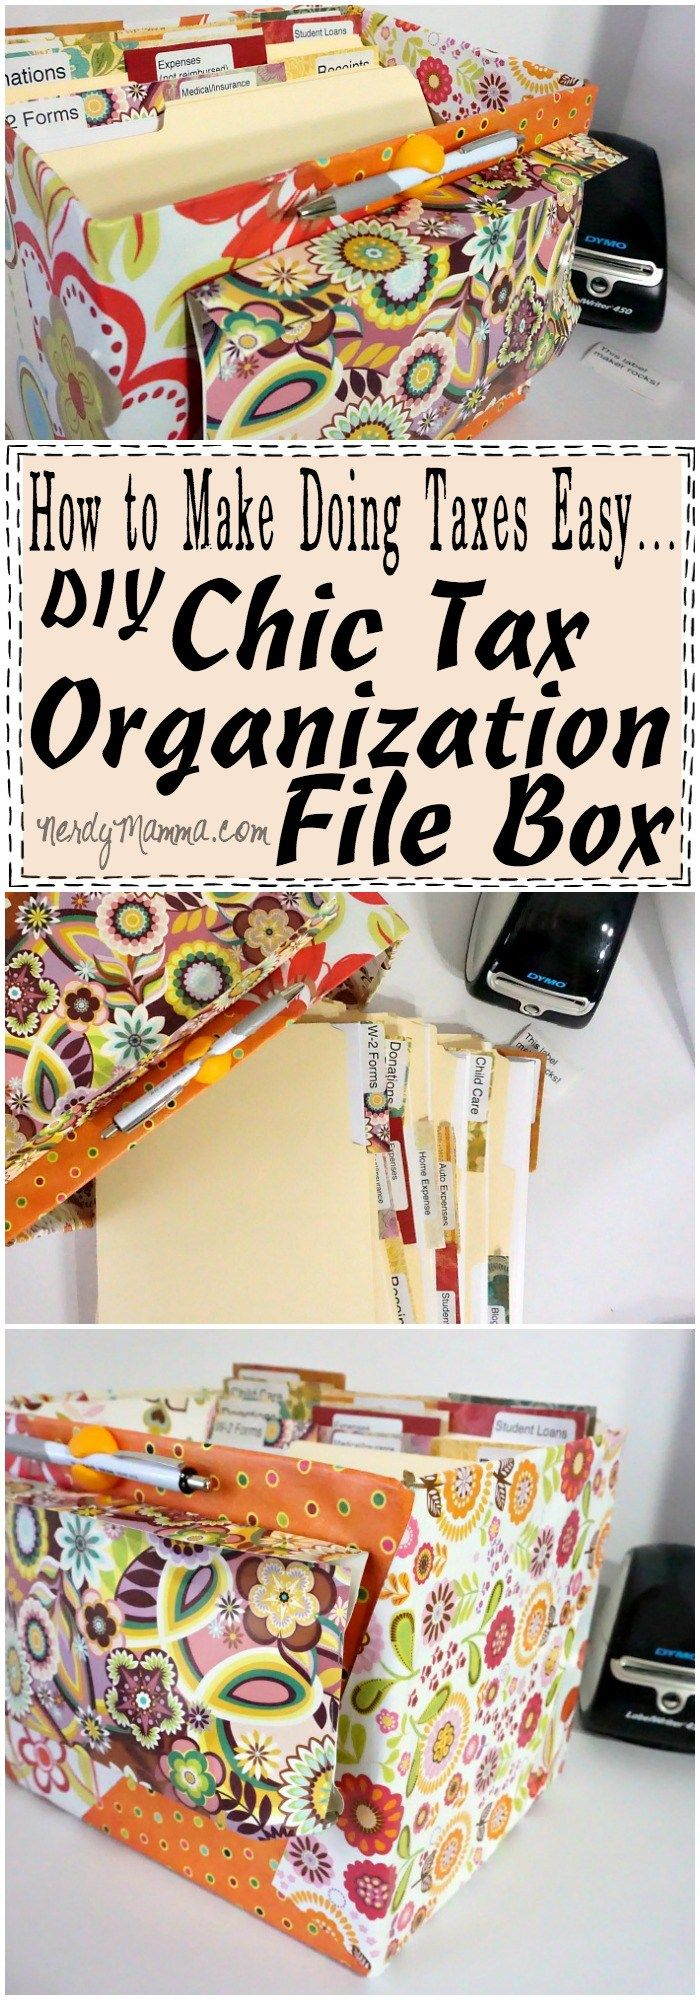 Make Doing Taxes Easy DIY Chic Tax Organization File Box